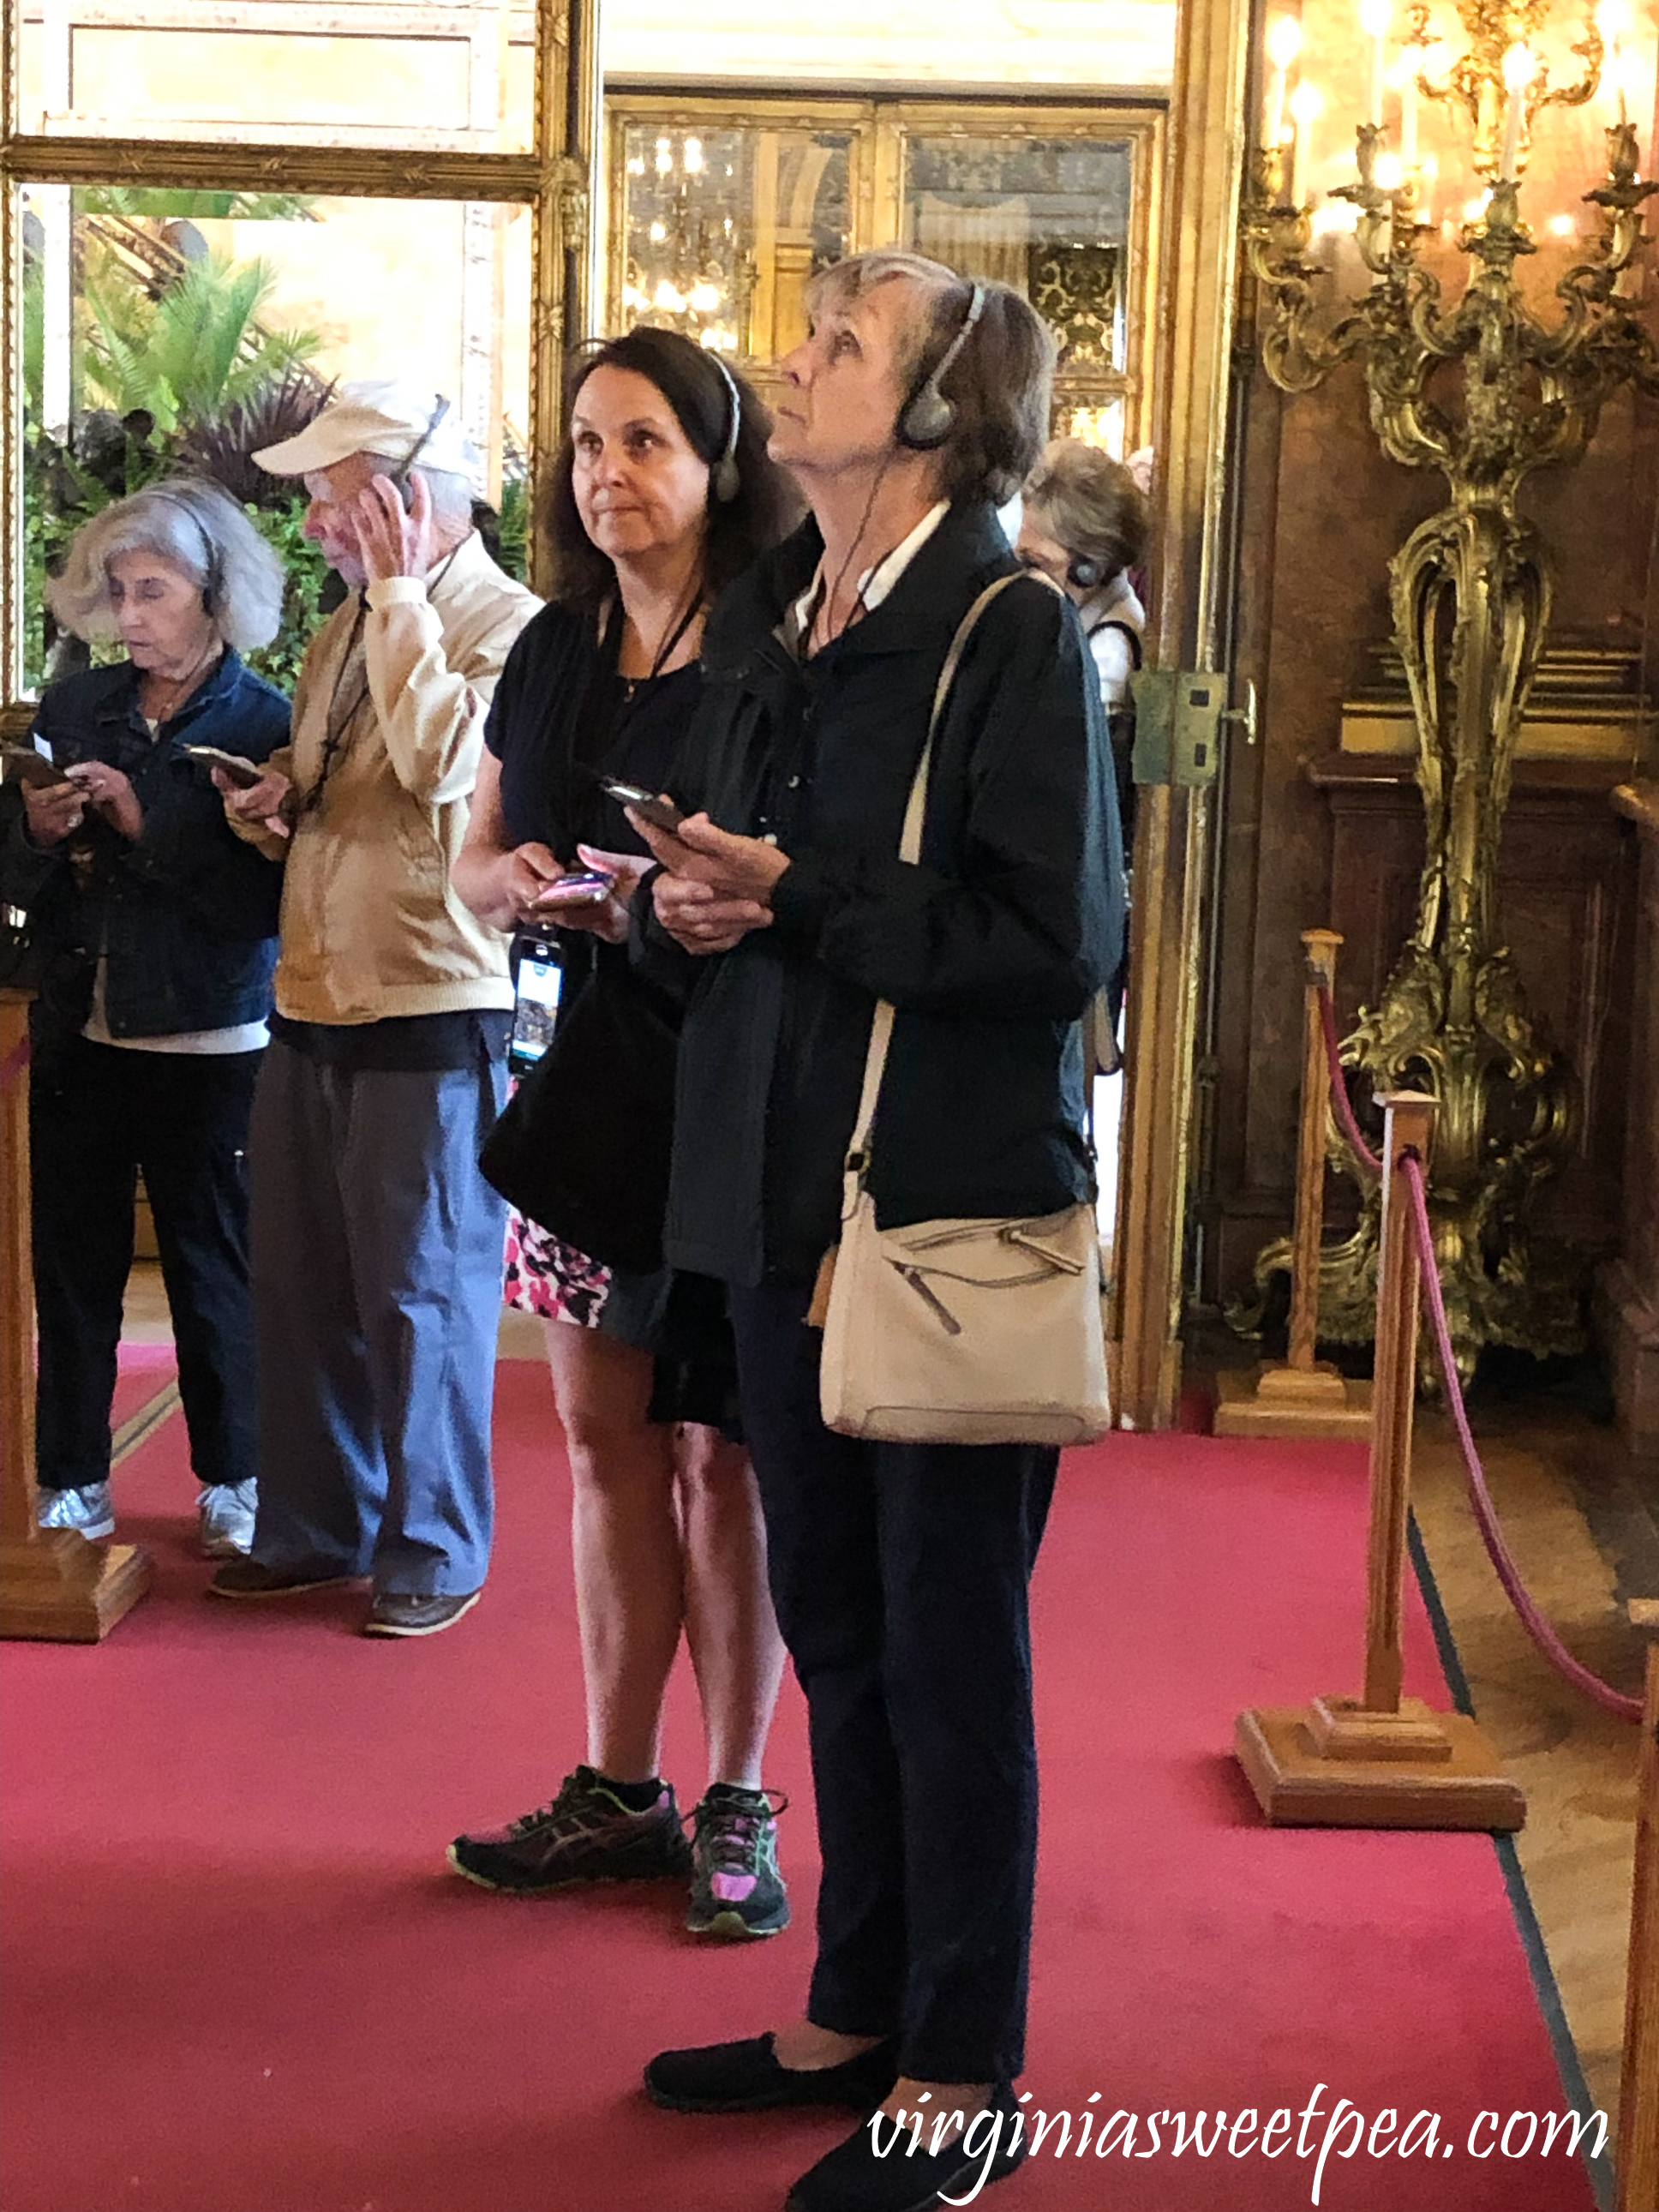 Touring Marble House in Rhode Island